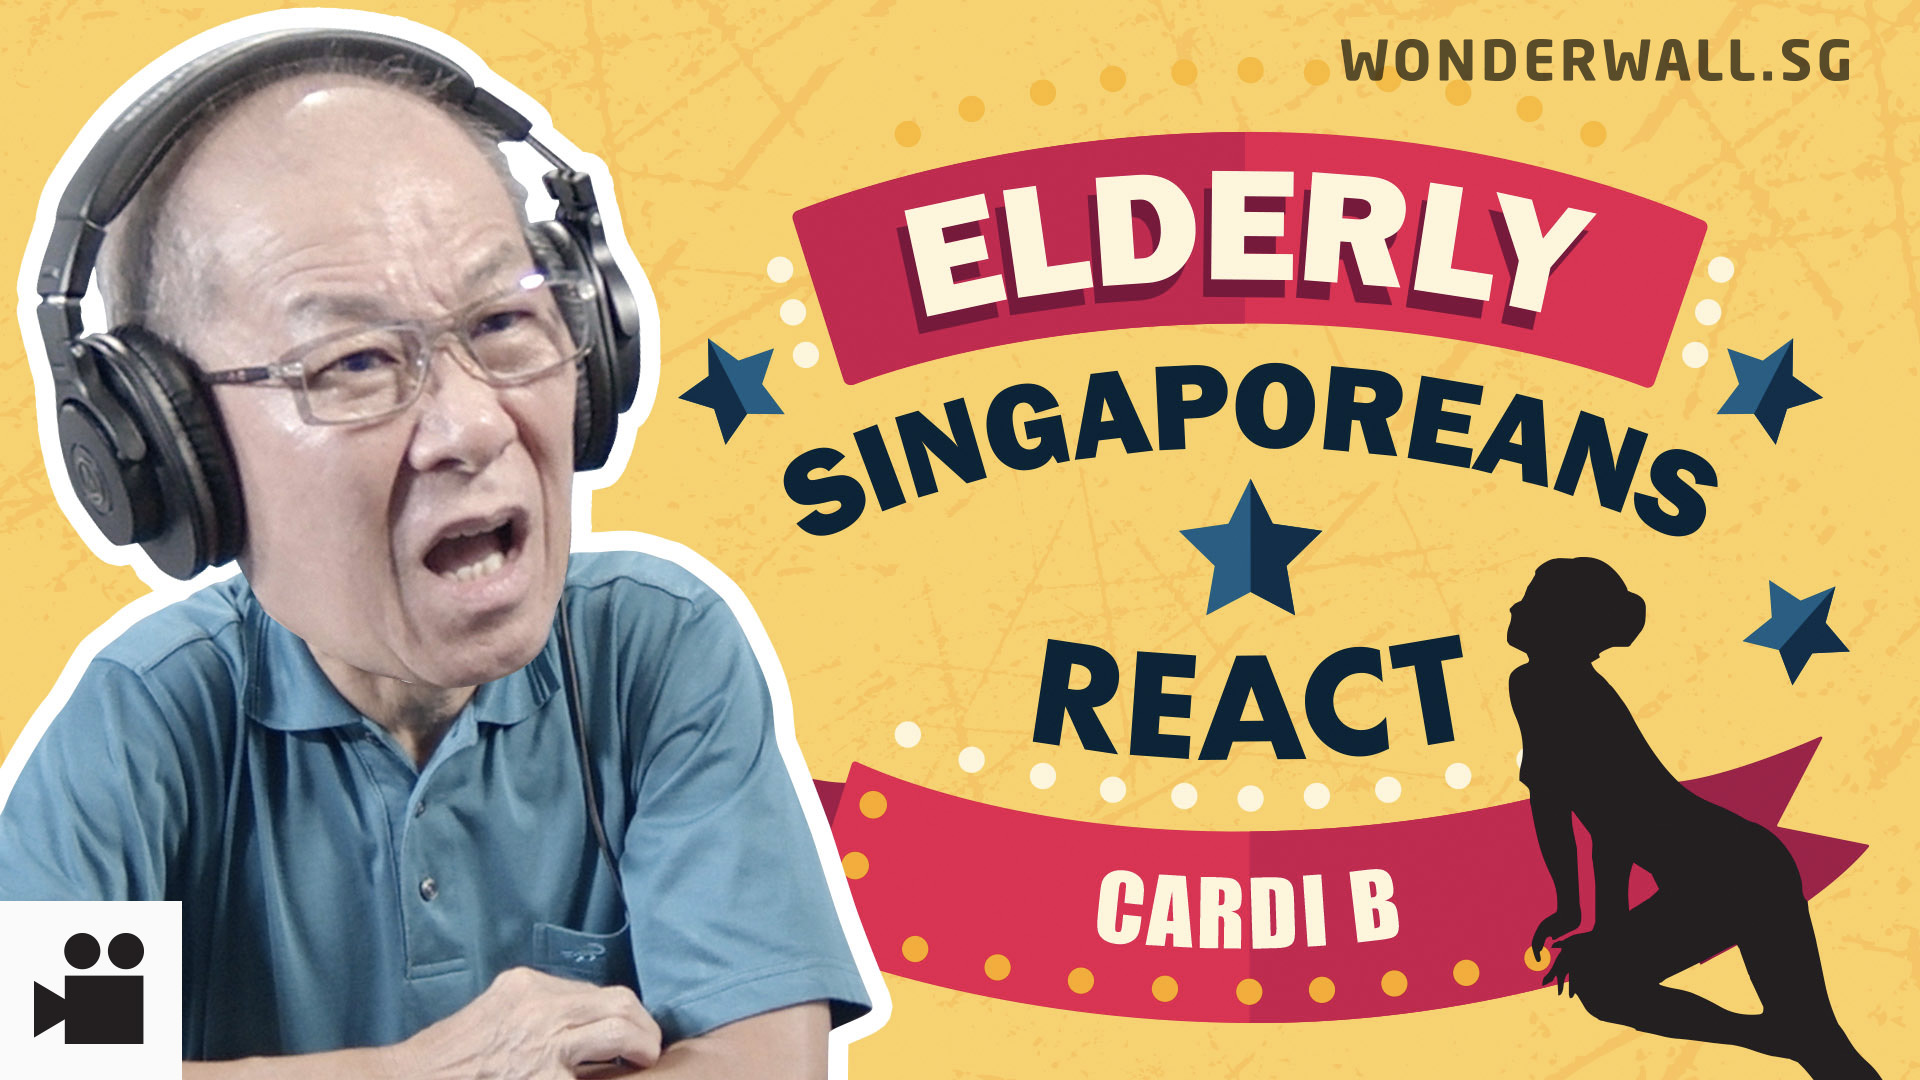 Elderly Singaporeans React: Cardi B - Press